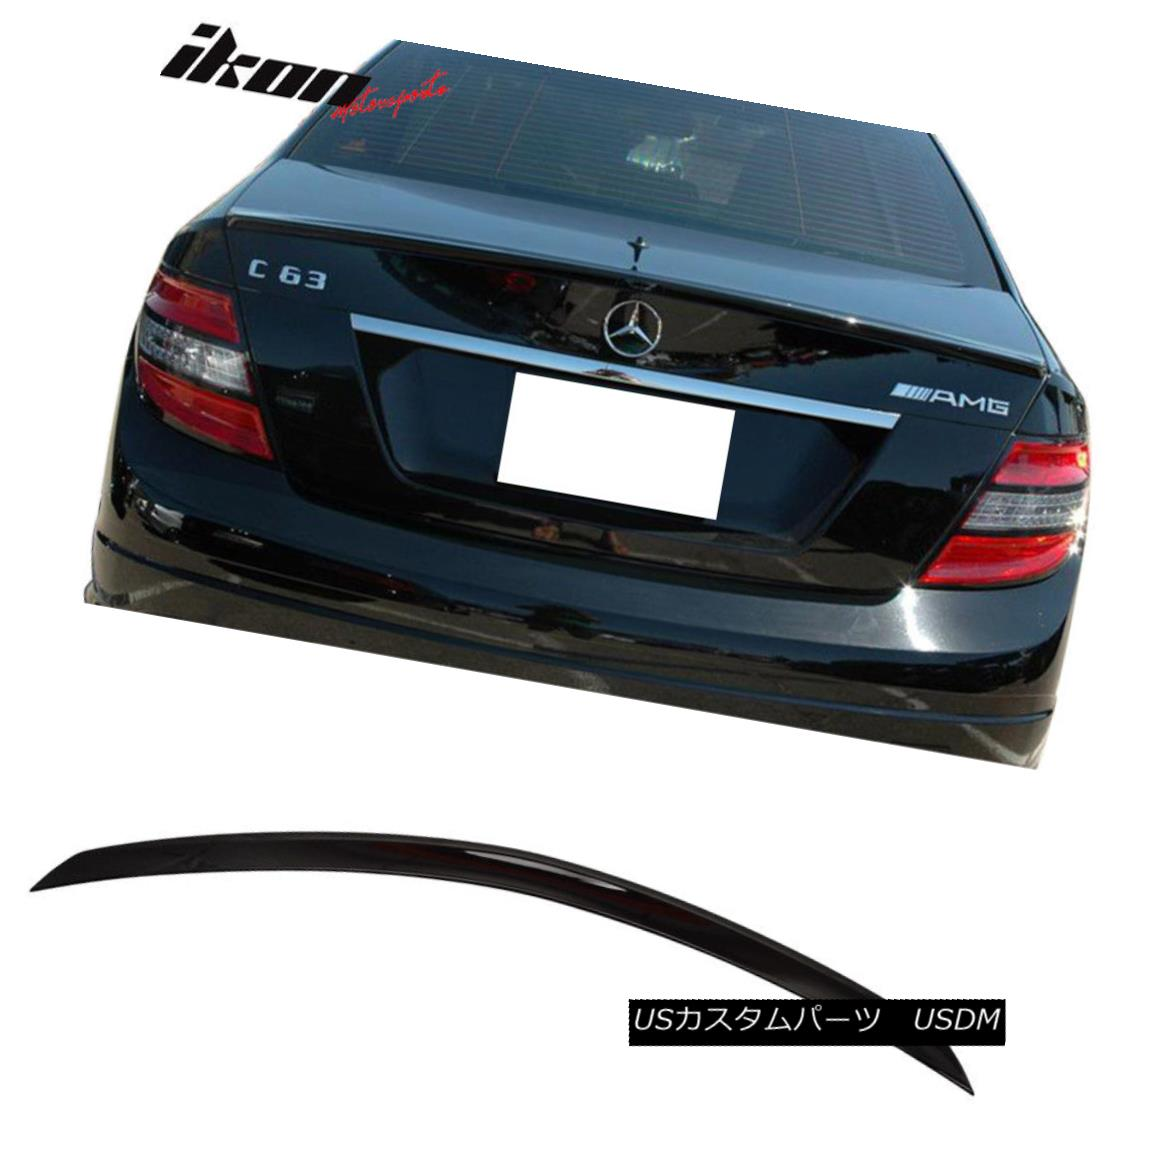 PAINTED MERCEDES BENZ C CLASS W203 C TYPE REAR TRUNK SPOILER 01-07 #040 Car Tuning & Styling Parts